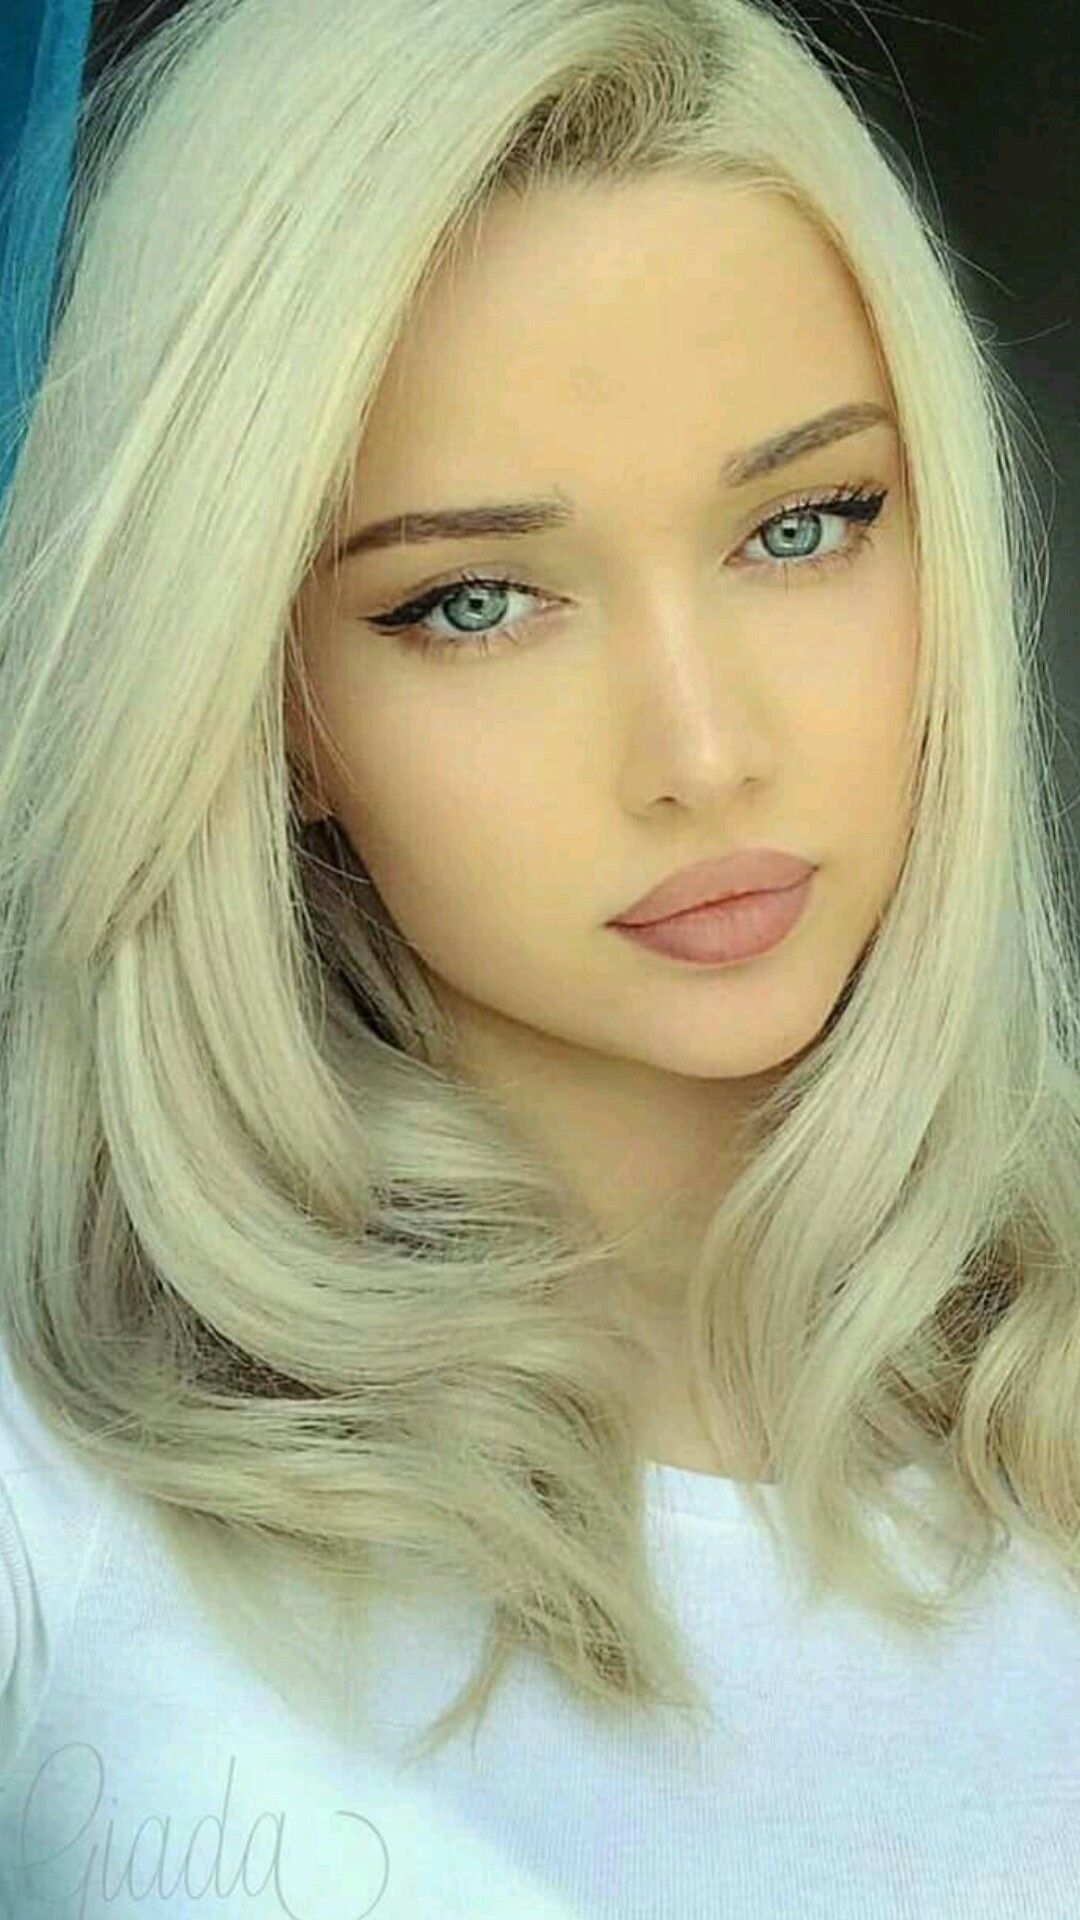 Pin by Ray on Stunning Faces | Blonde girl, Blonde beauty